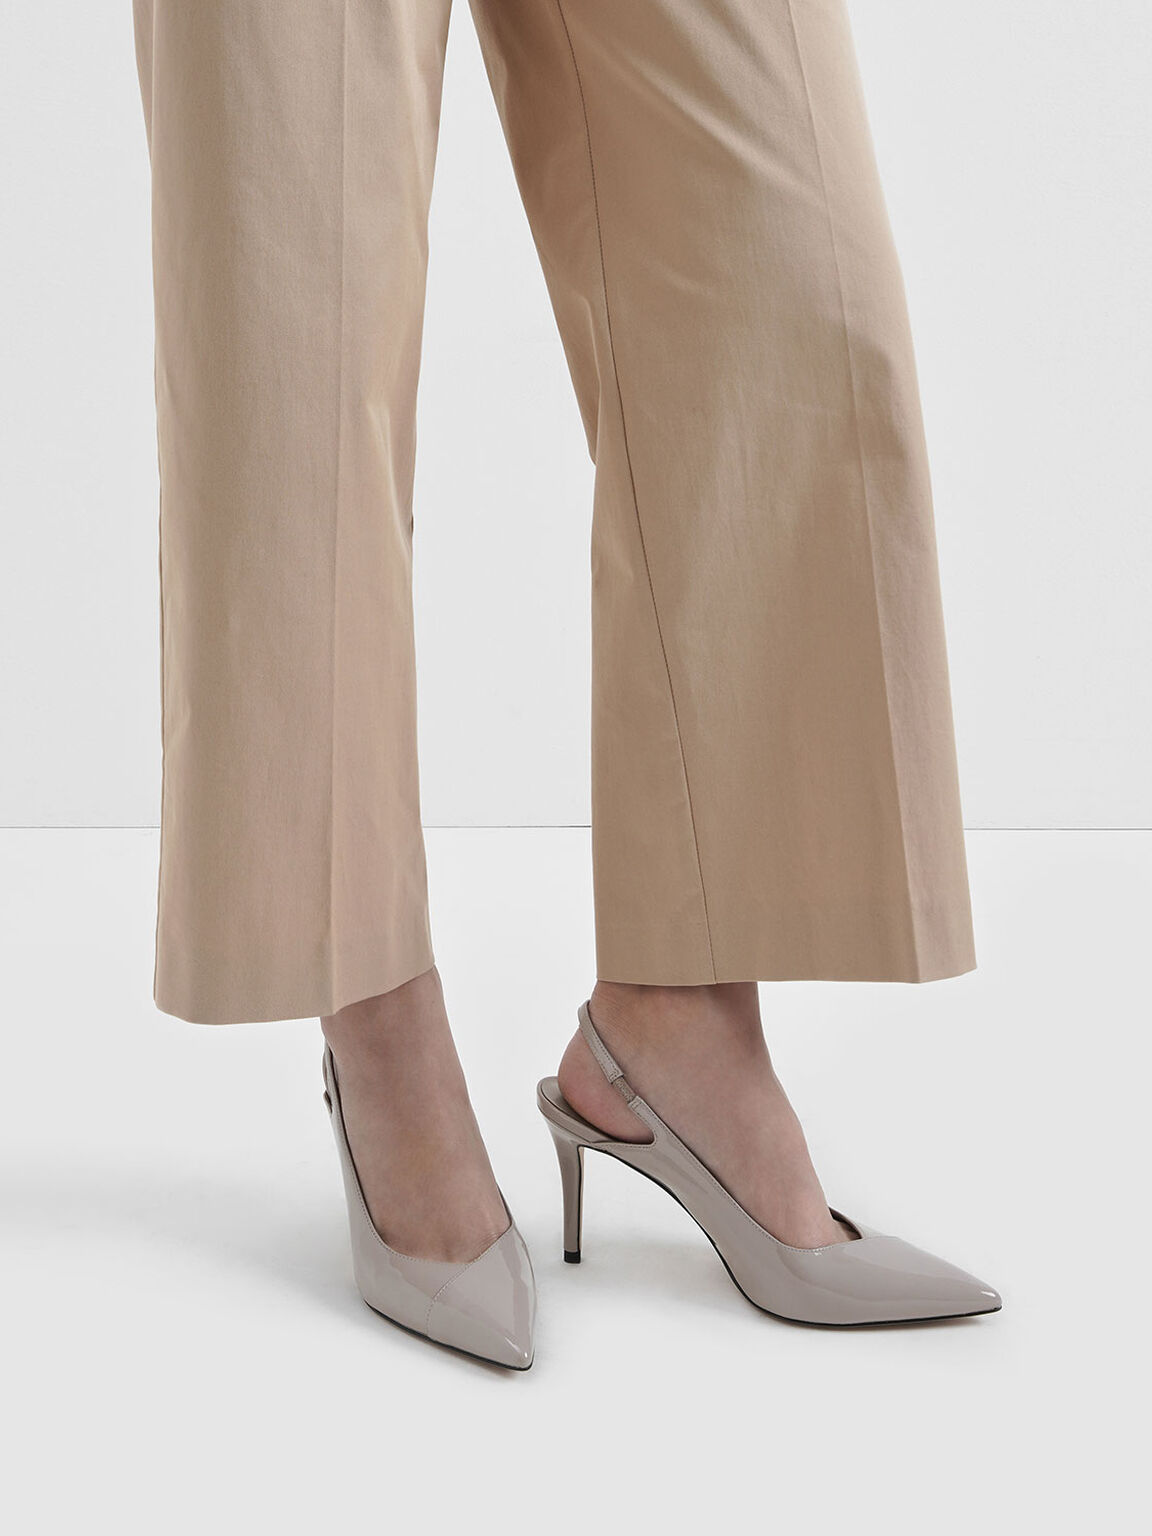 Patent Slingback Stiletto Pumps, Nude, hi-res